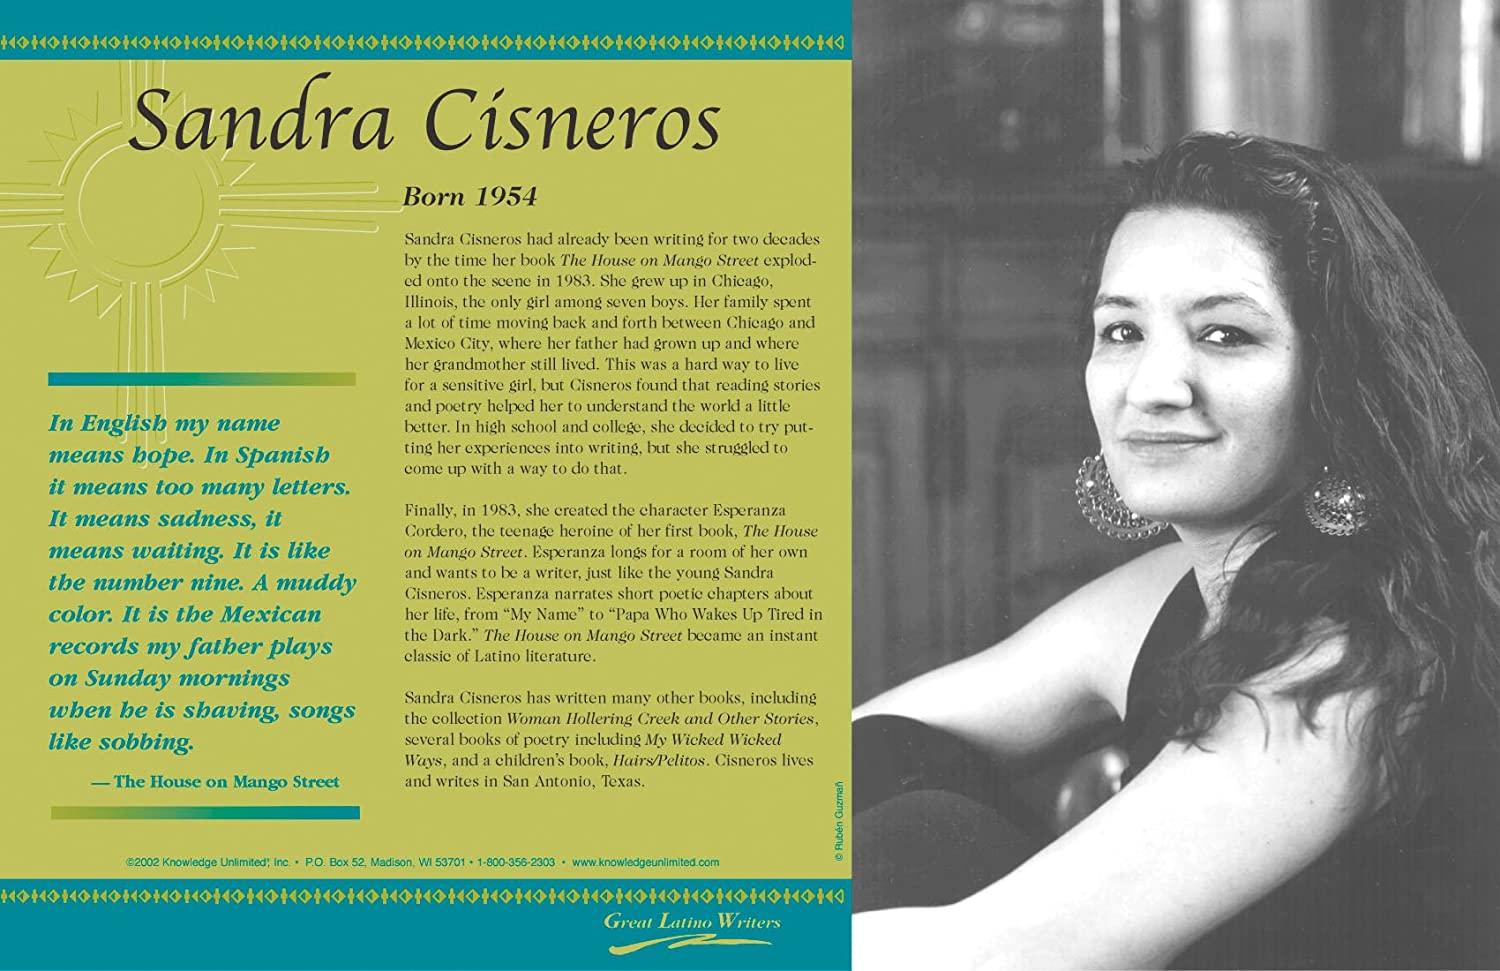 a glimpse at the life of sandra cisneros and her writing the house on mango street